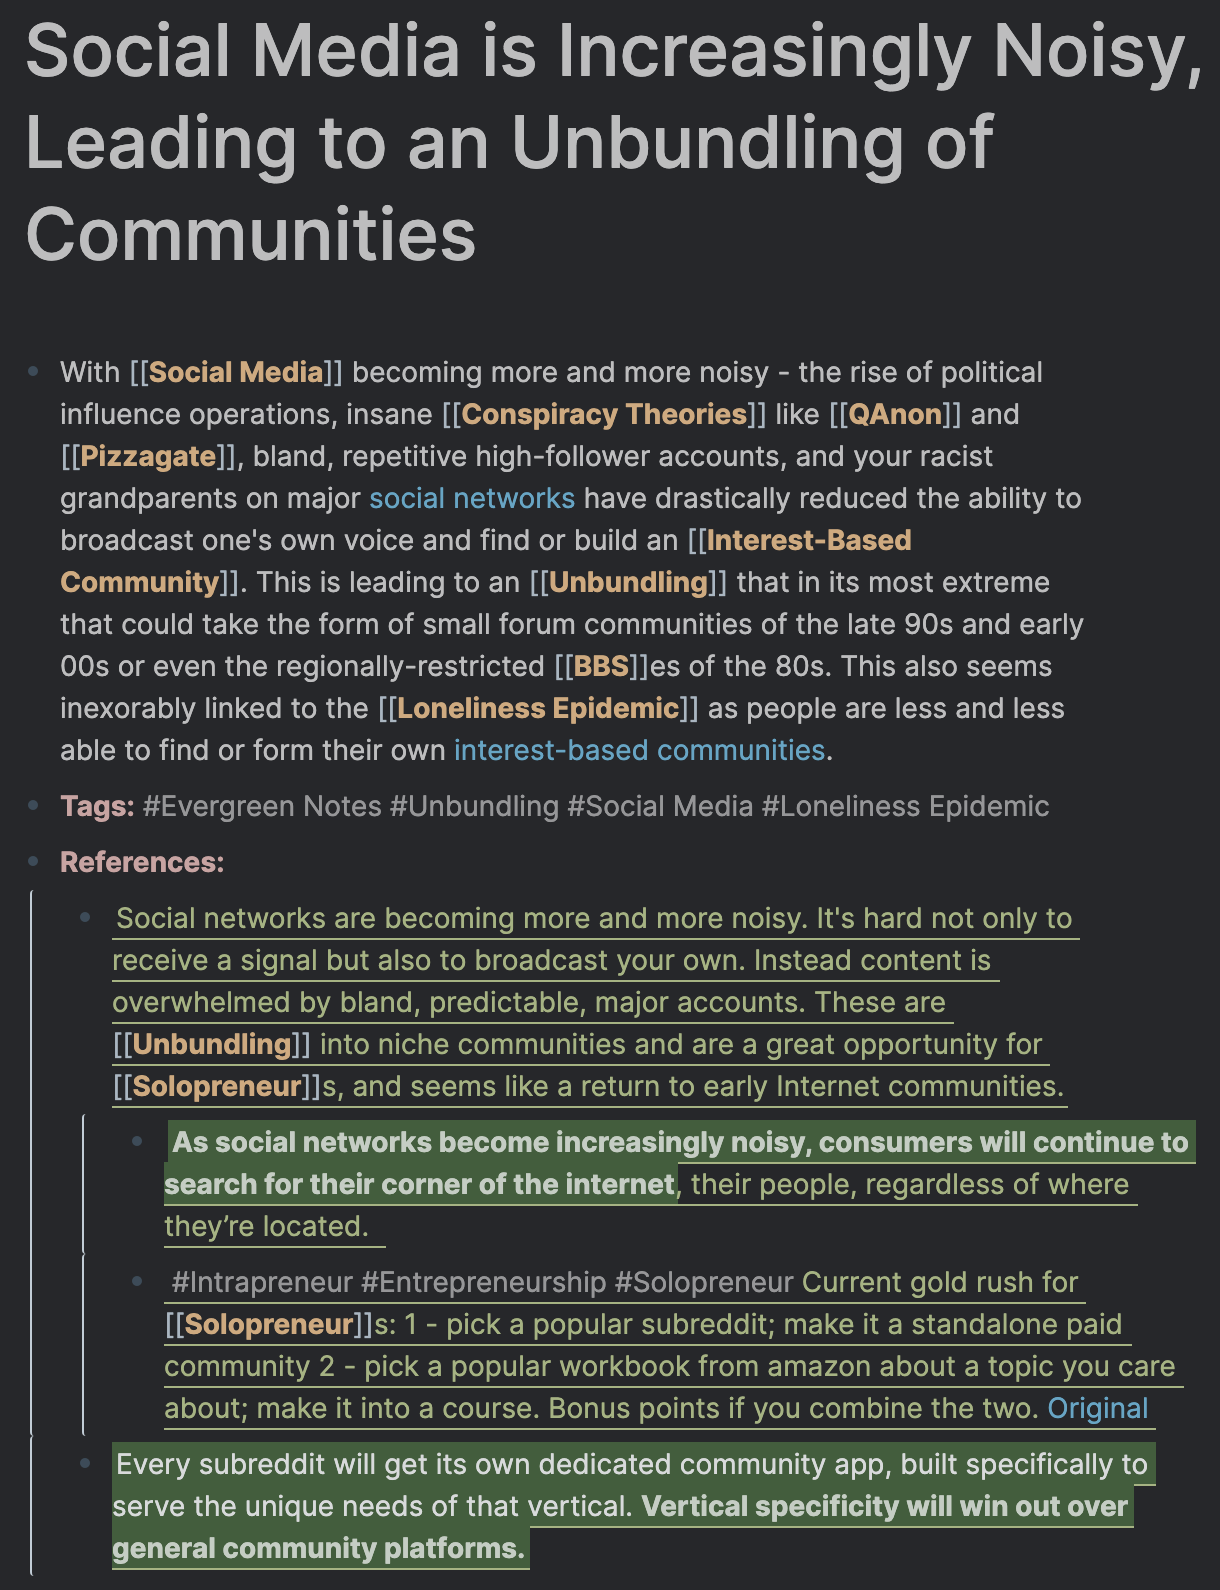 An evergreen note about the unbundling of communities